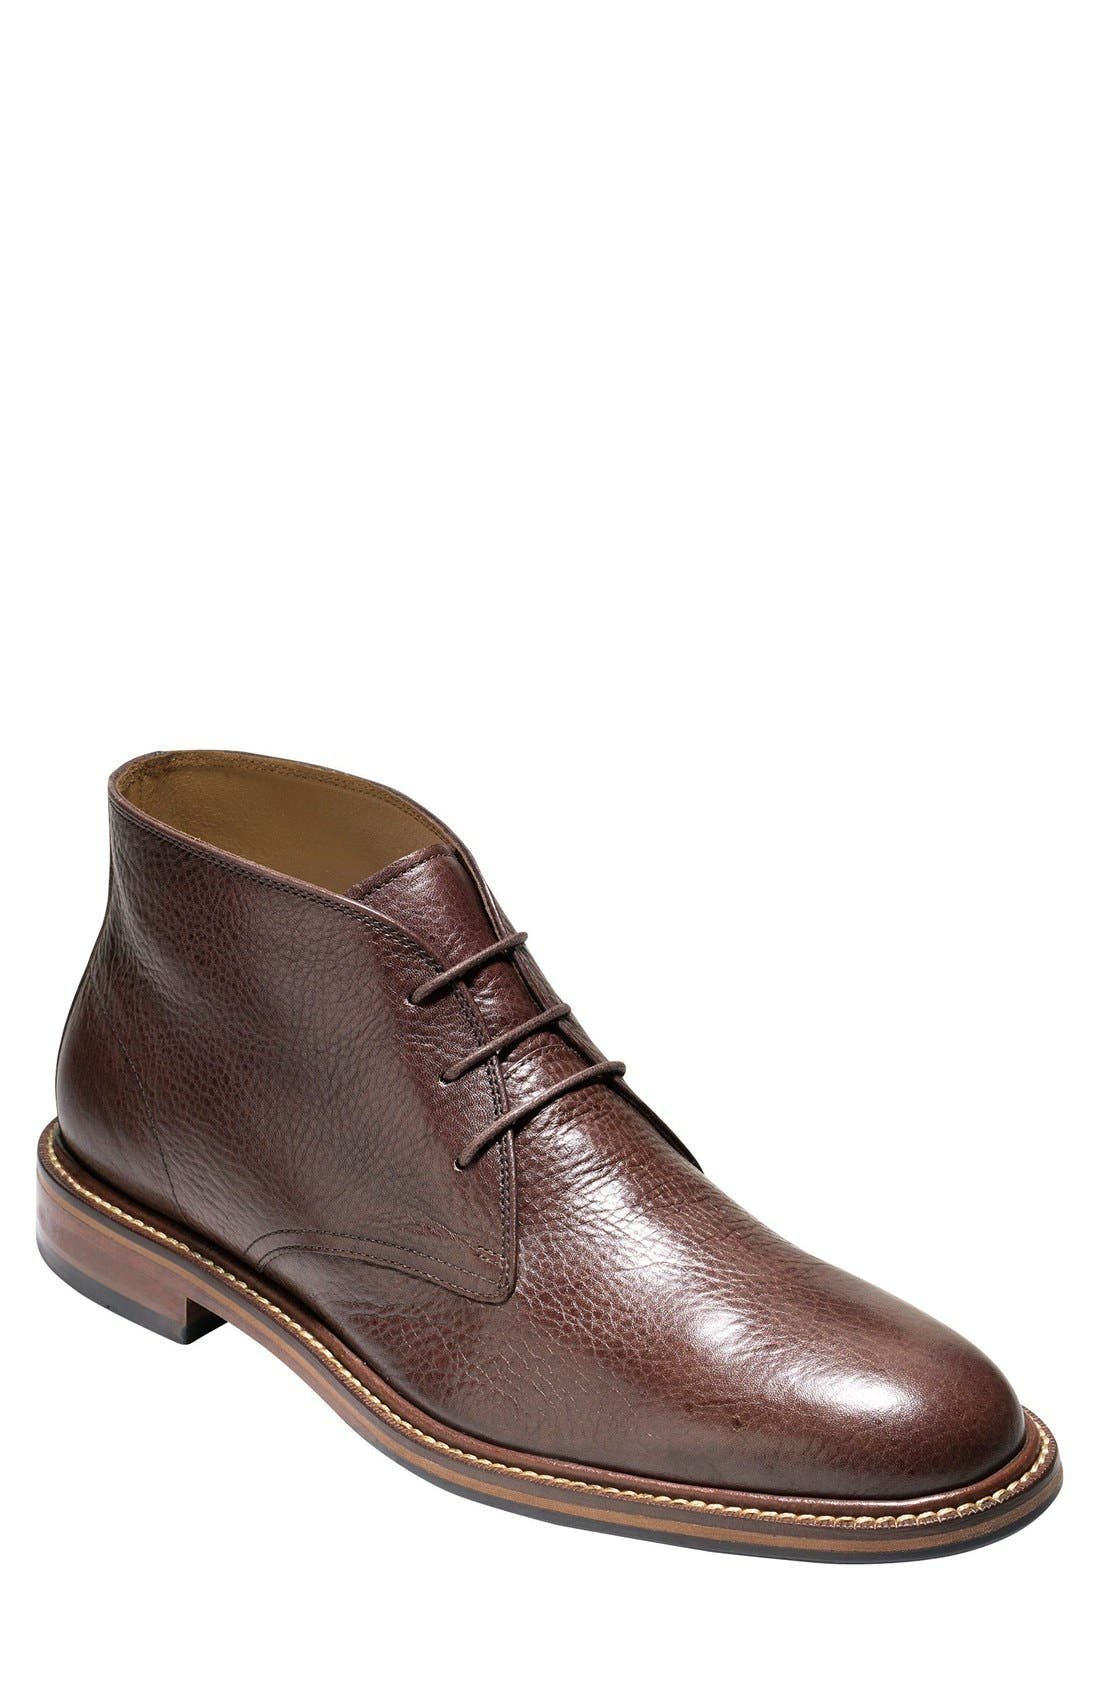 Alternate Image 1 Selected - Cole Haan 'Barron' Chukka Boot (Men)